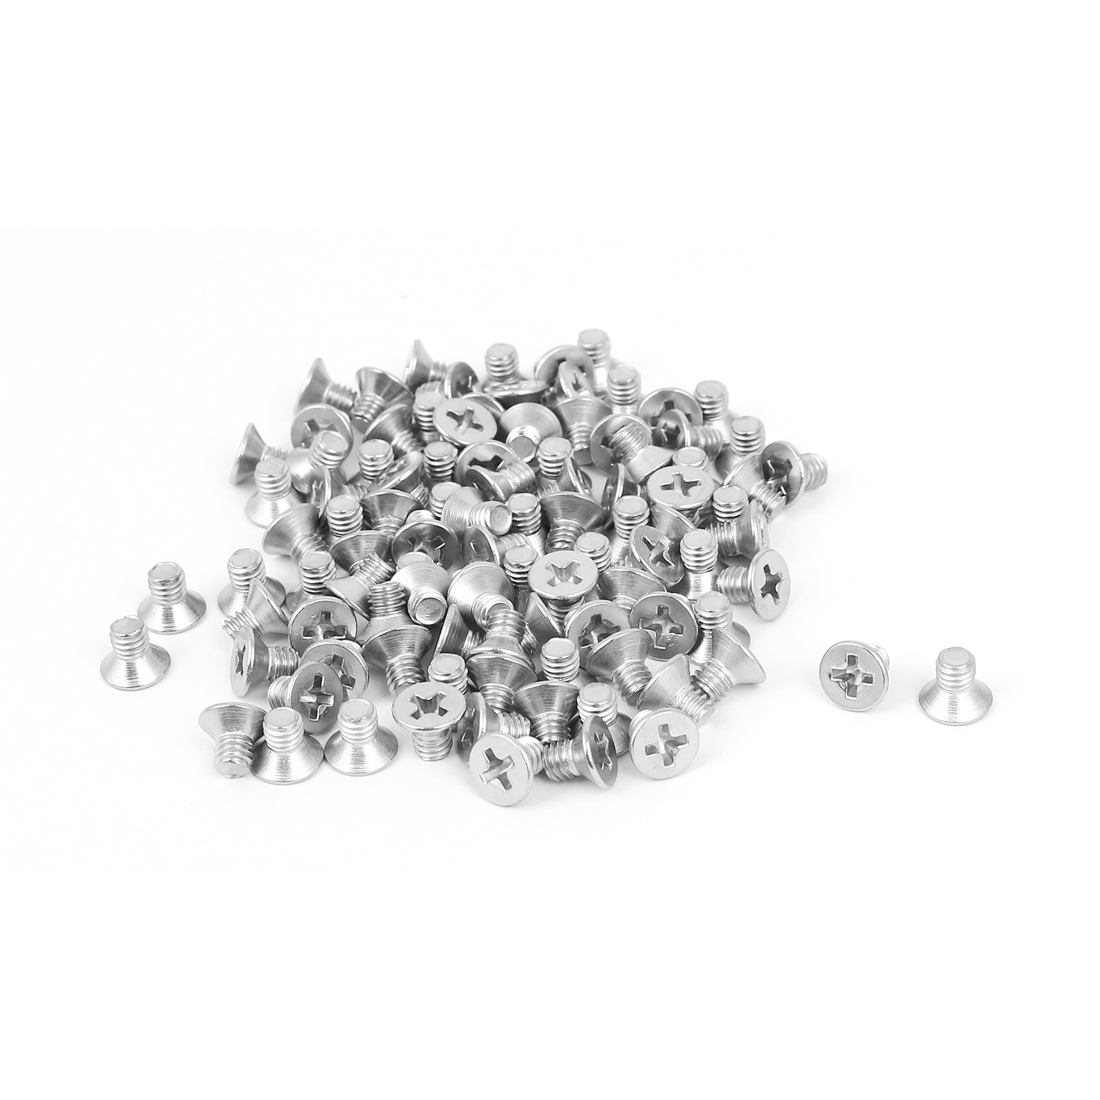 M4x6mm 304 Stainless Steel Phillips Flat Countersunk Head Machine Screws 100pcs